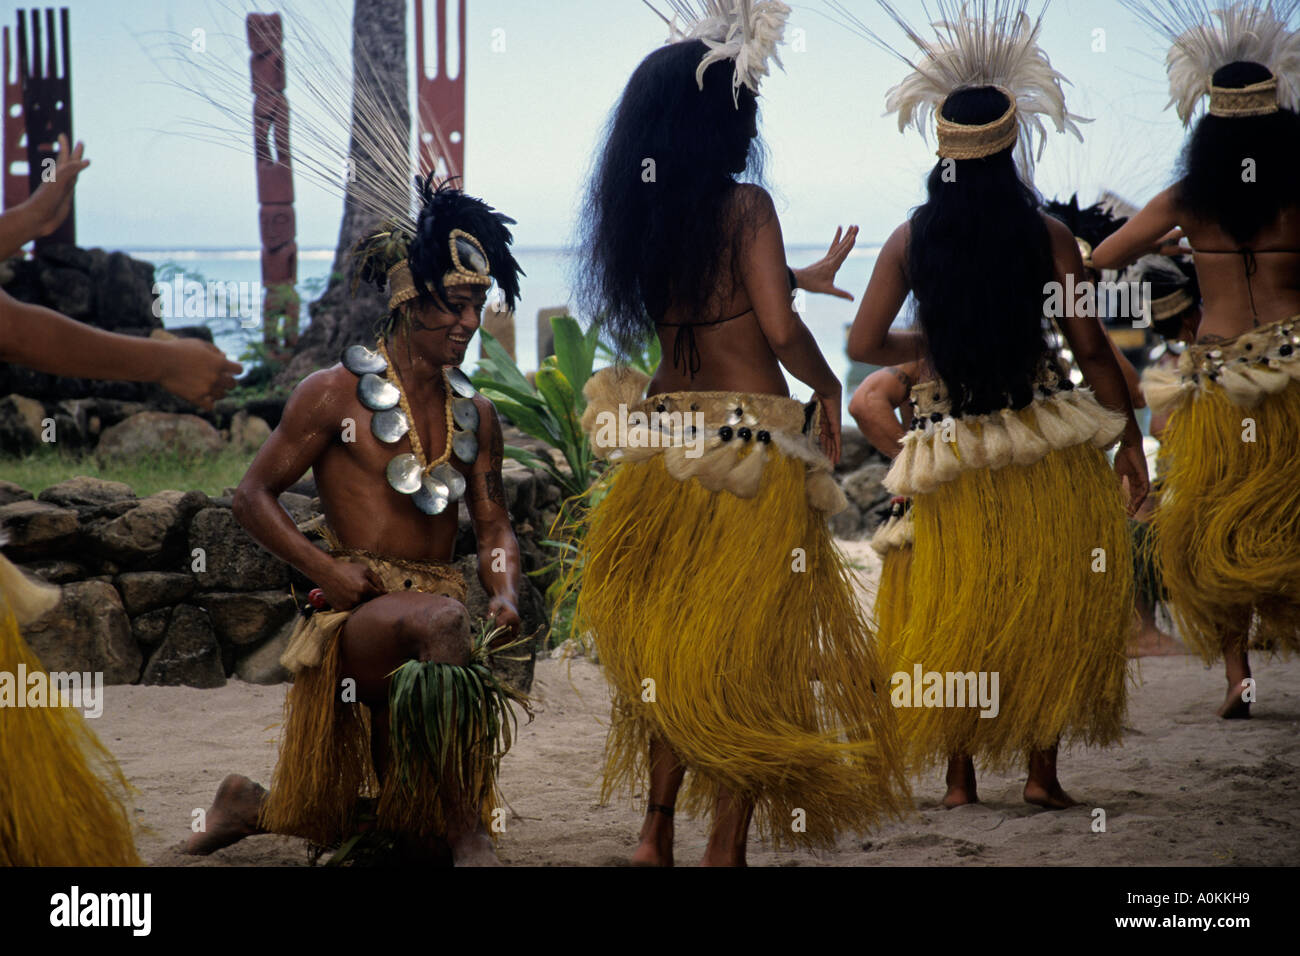 Tahitian men and women in traditional costumes perform Polynesian dances - Stock Image